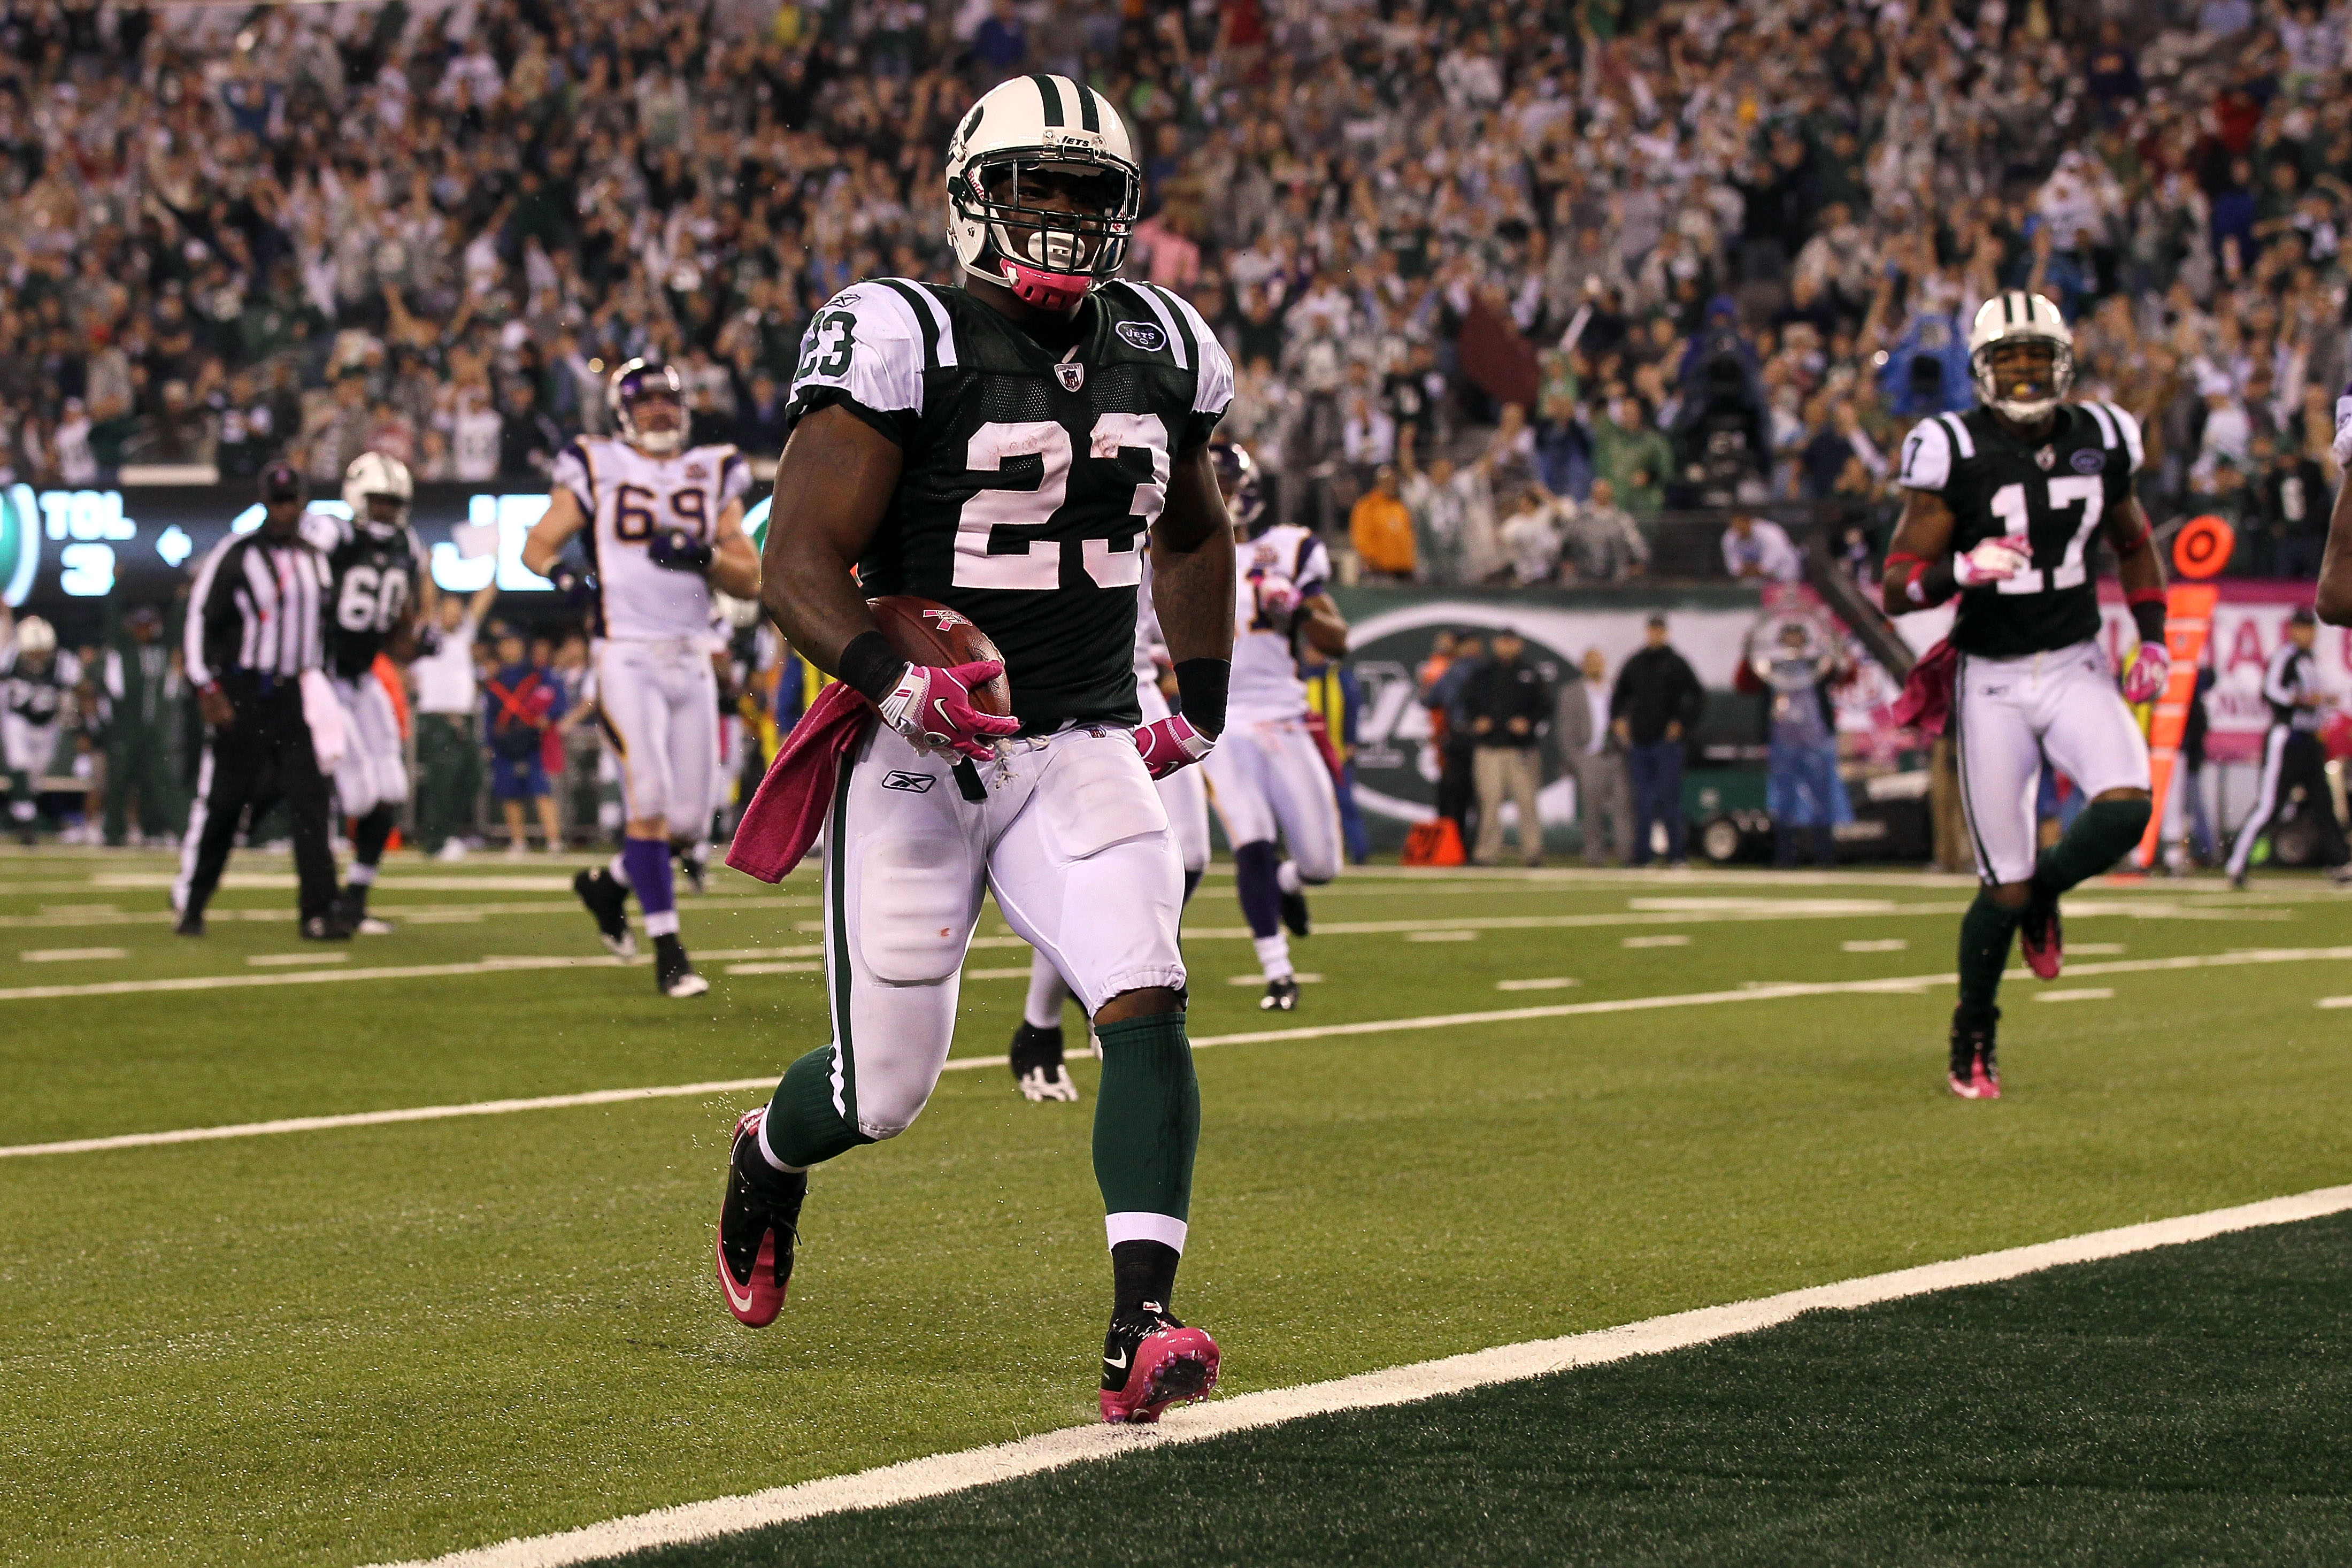 EAST RUTHERFORD, NJ - OCTOBER 11:  Shonn Green #23 of the New York Jets runs for a 23-yard rushing touchdown in the fourth quarter against the Minnesota Vikings at New Meadowlands Stadium on October 11, 2010 in East Rutherford, New Jersey.  (Photo by Jim